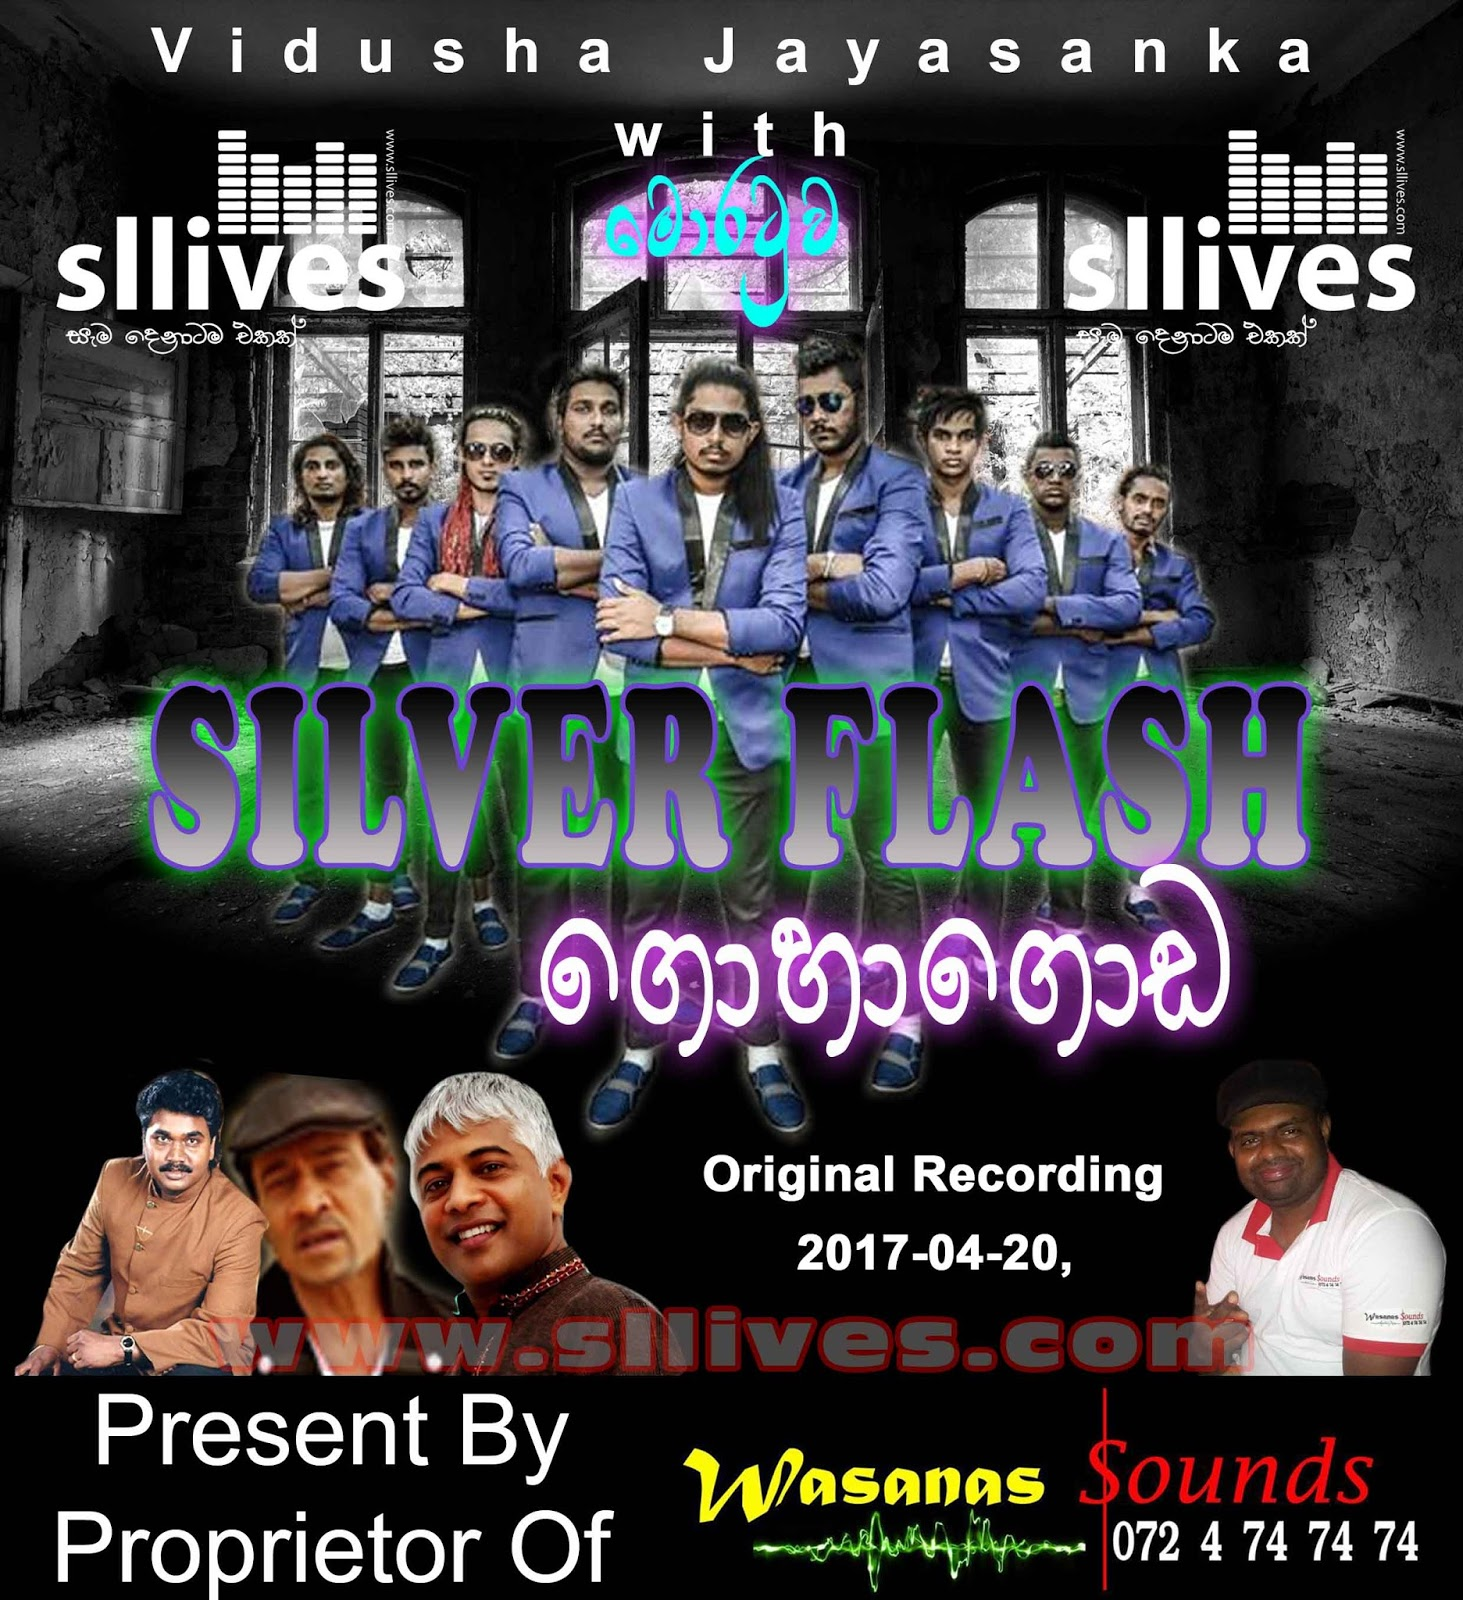 VIDUSHA JAYASANKA WITH SILVER FLASH LIVE IN GOHAGODA 2017 ...